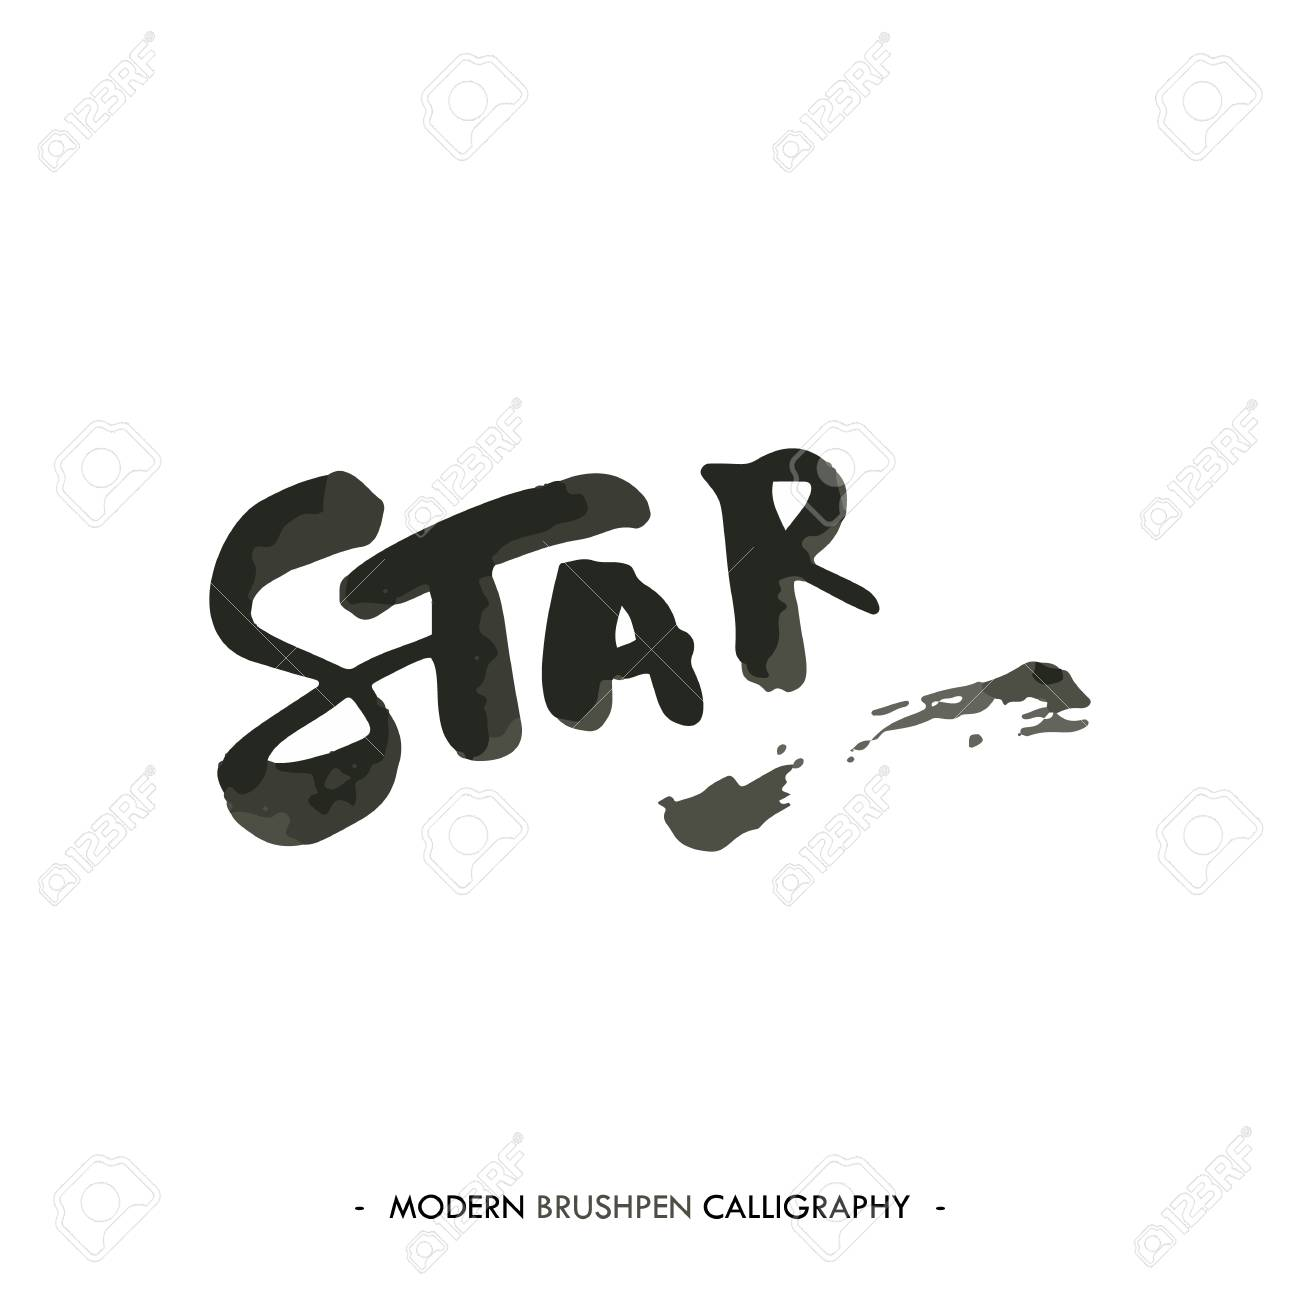 star word painted with brush in modern calligraphy style royalty